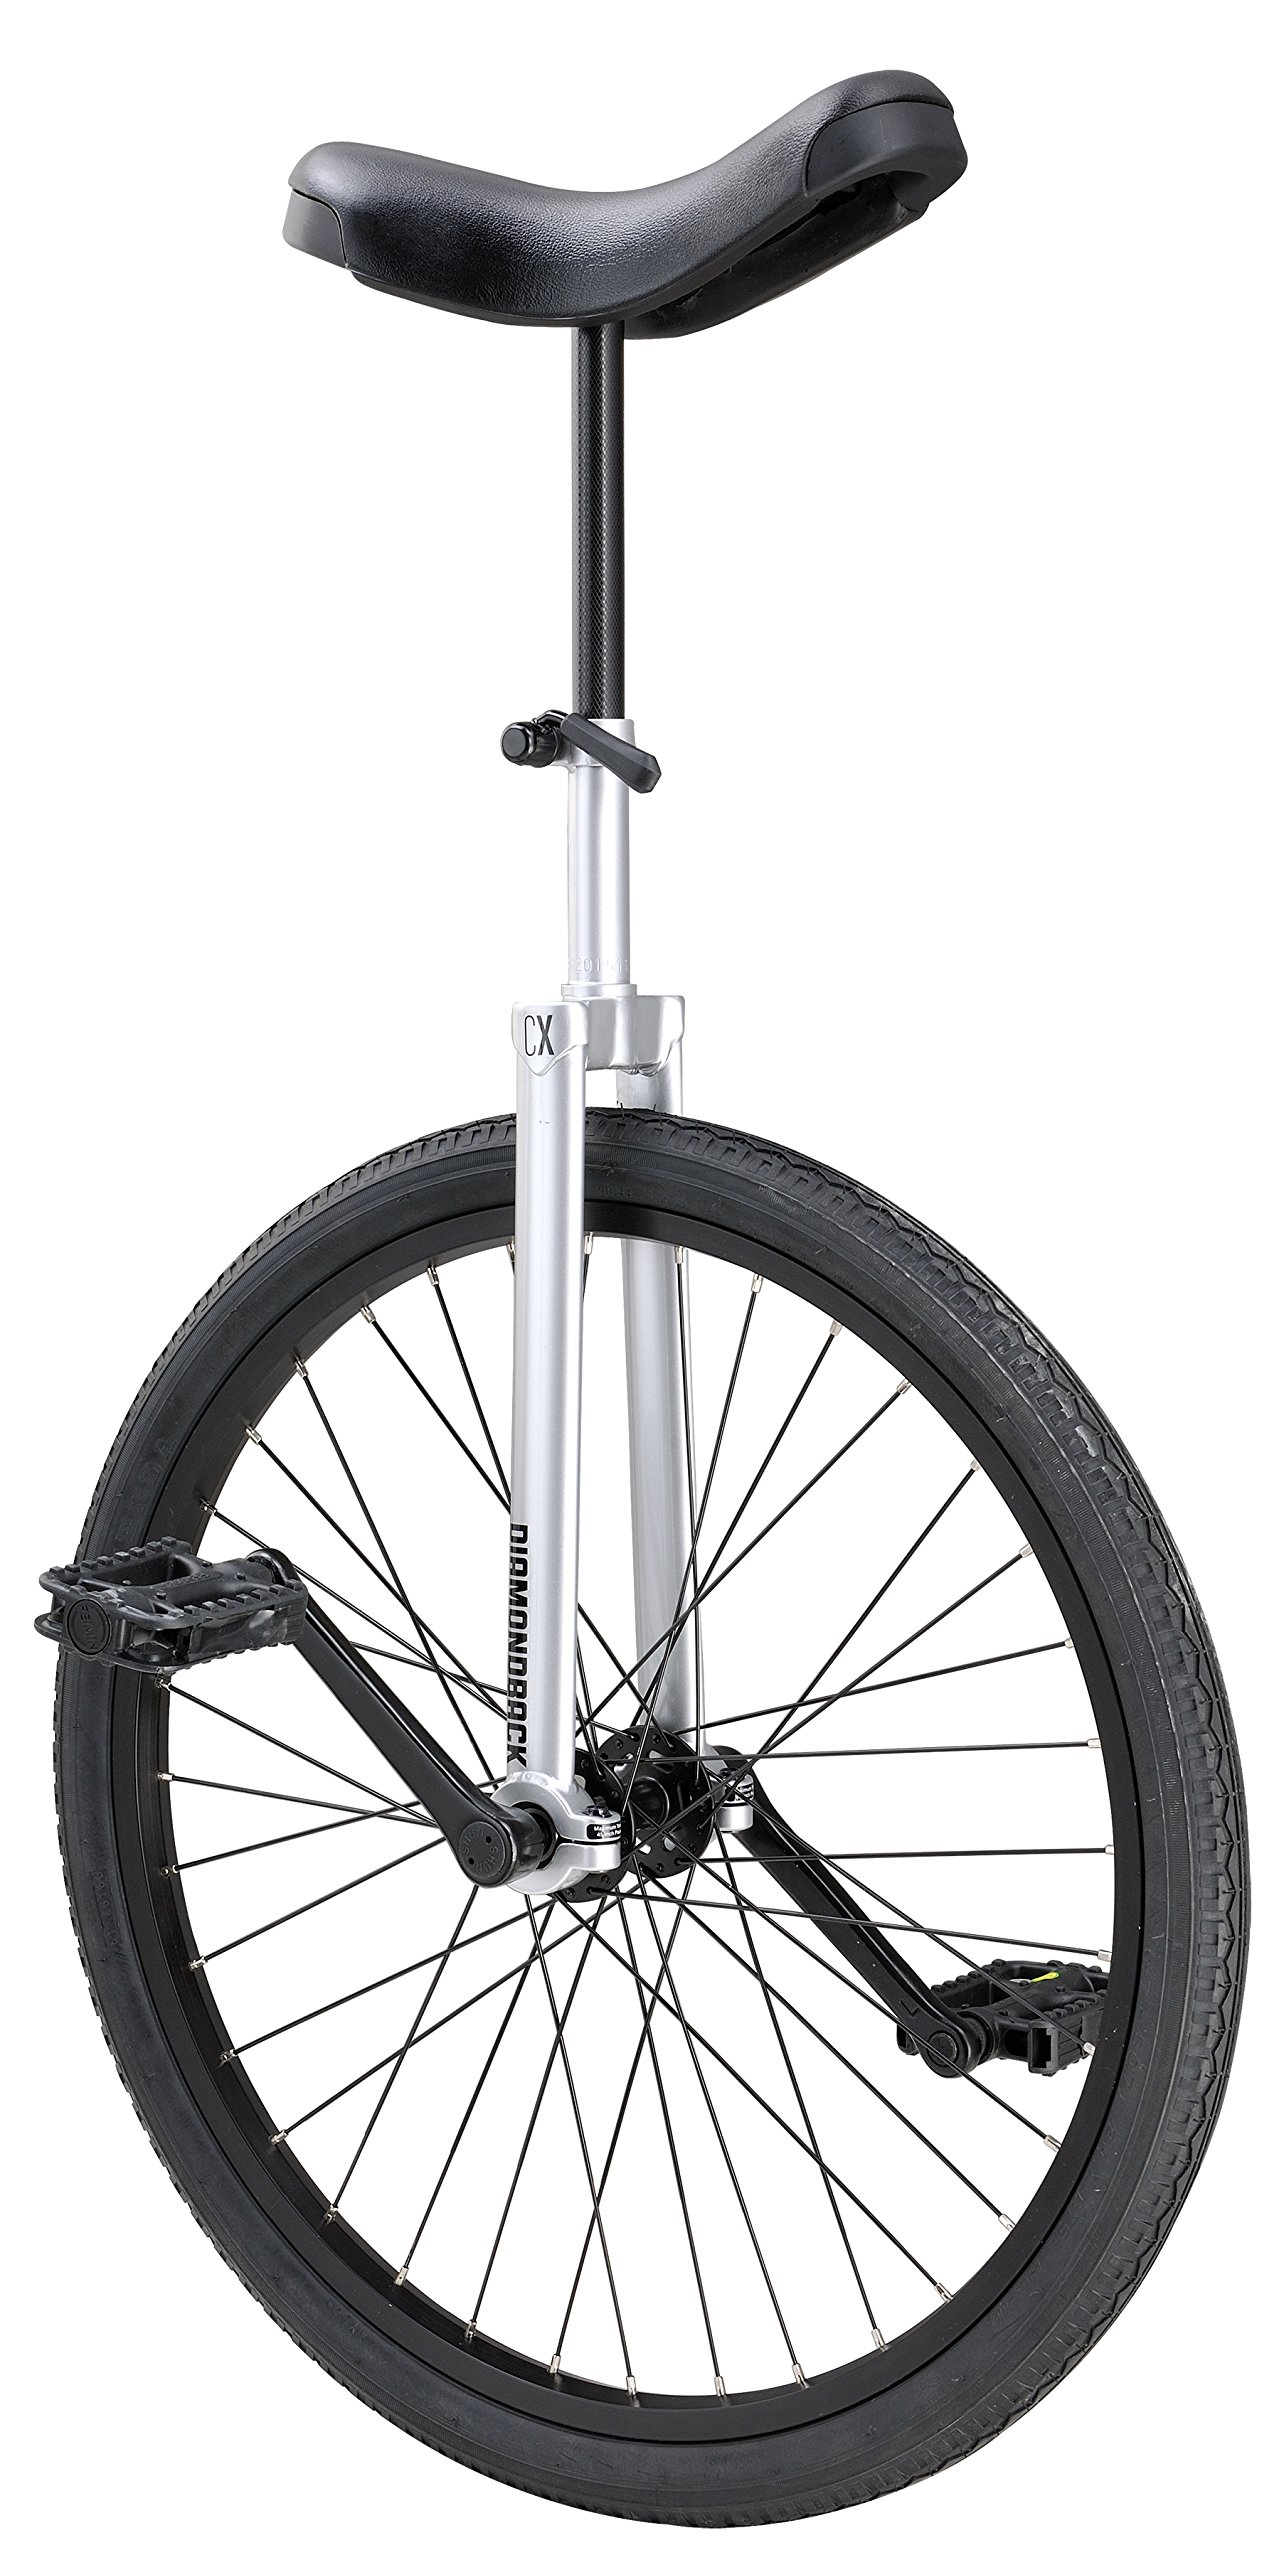 Diamondback Bicycles CX Wheel Unicycle, Chrome/Painted, 24''/One Size by Diamondback Bicycles